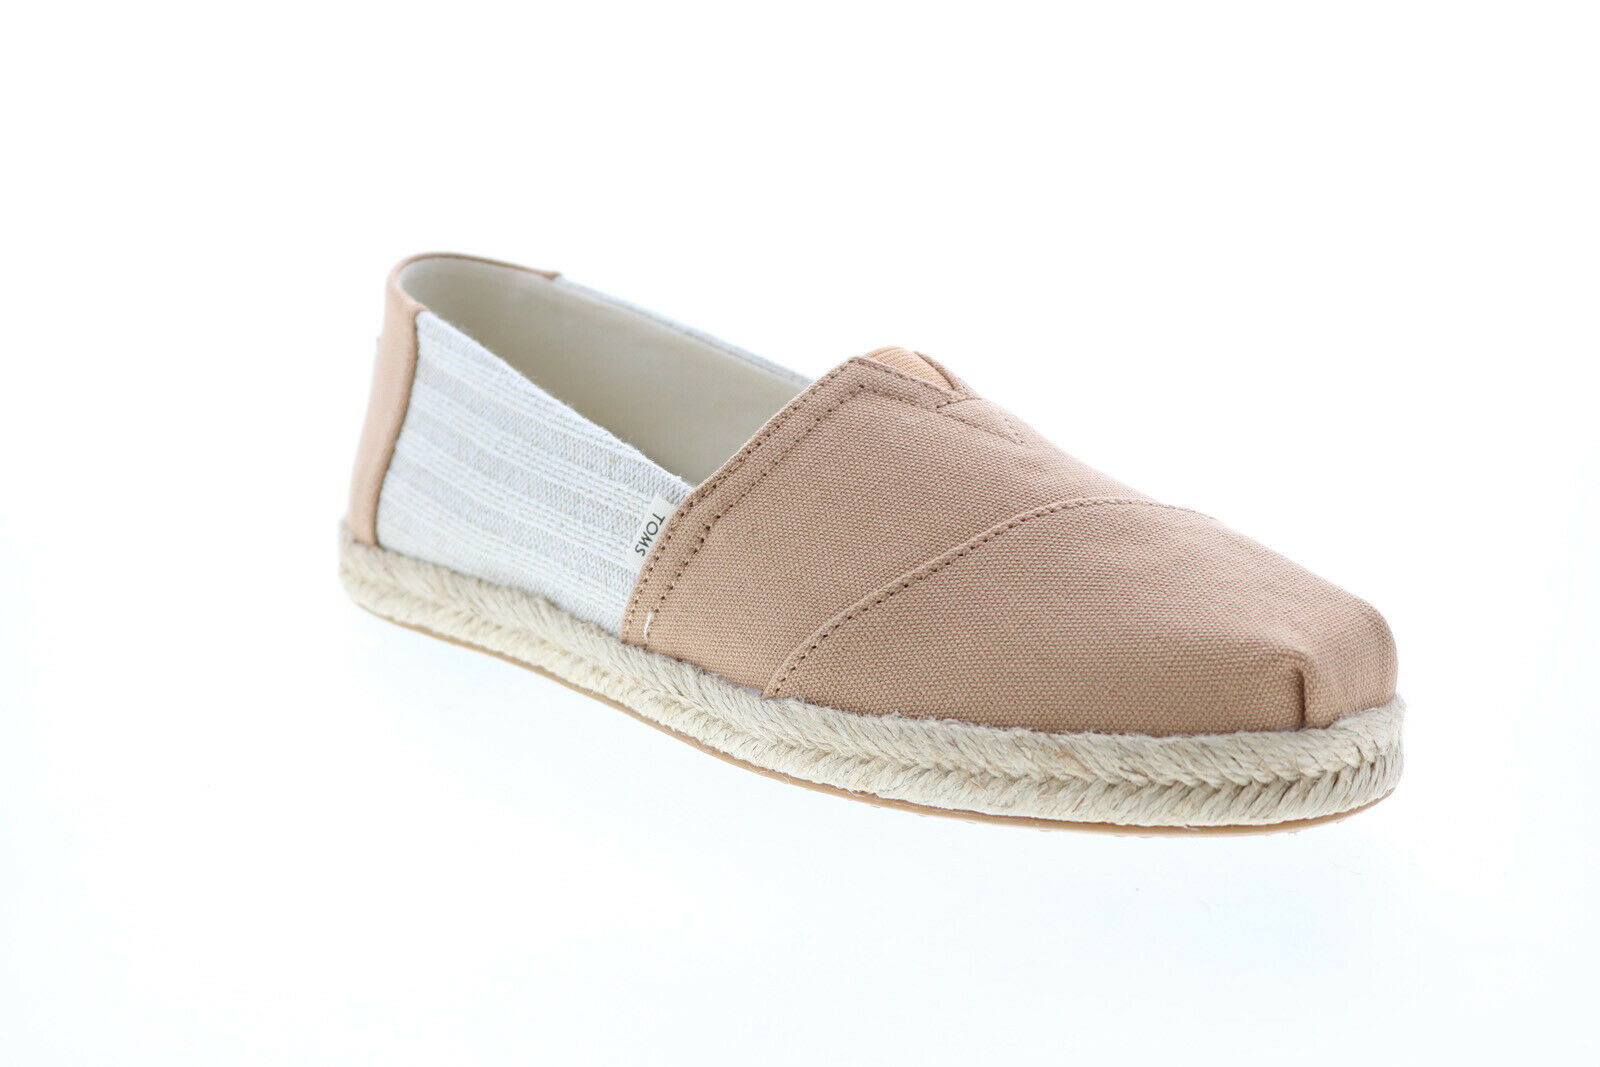 Toms Classic 10013479 Womens Brown Canvas Slip On Loafer Flats Shoes 8.5